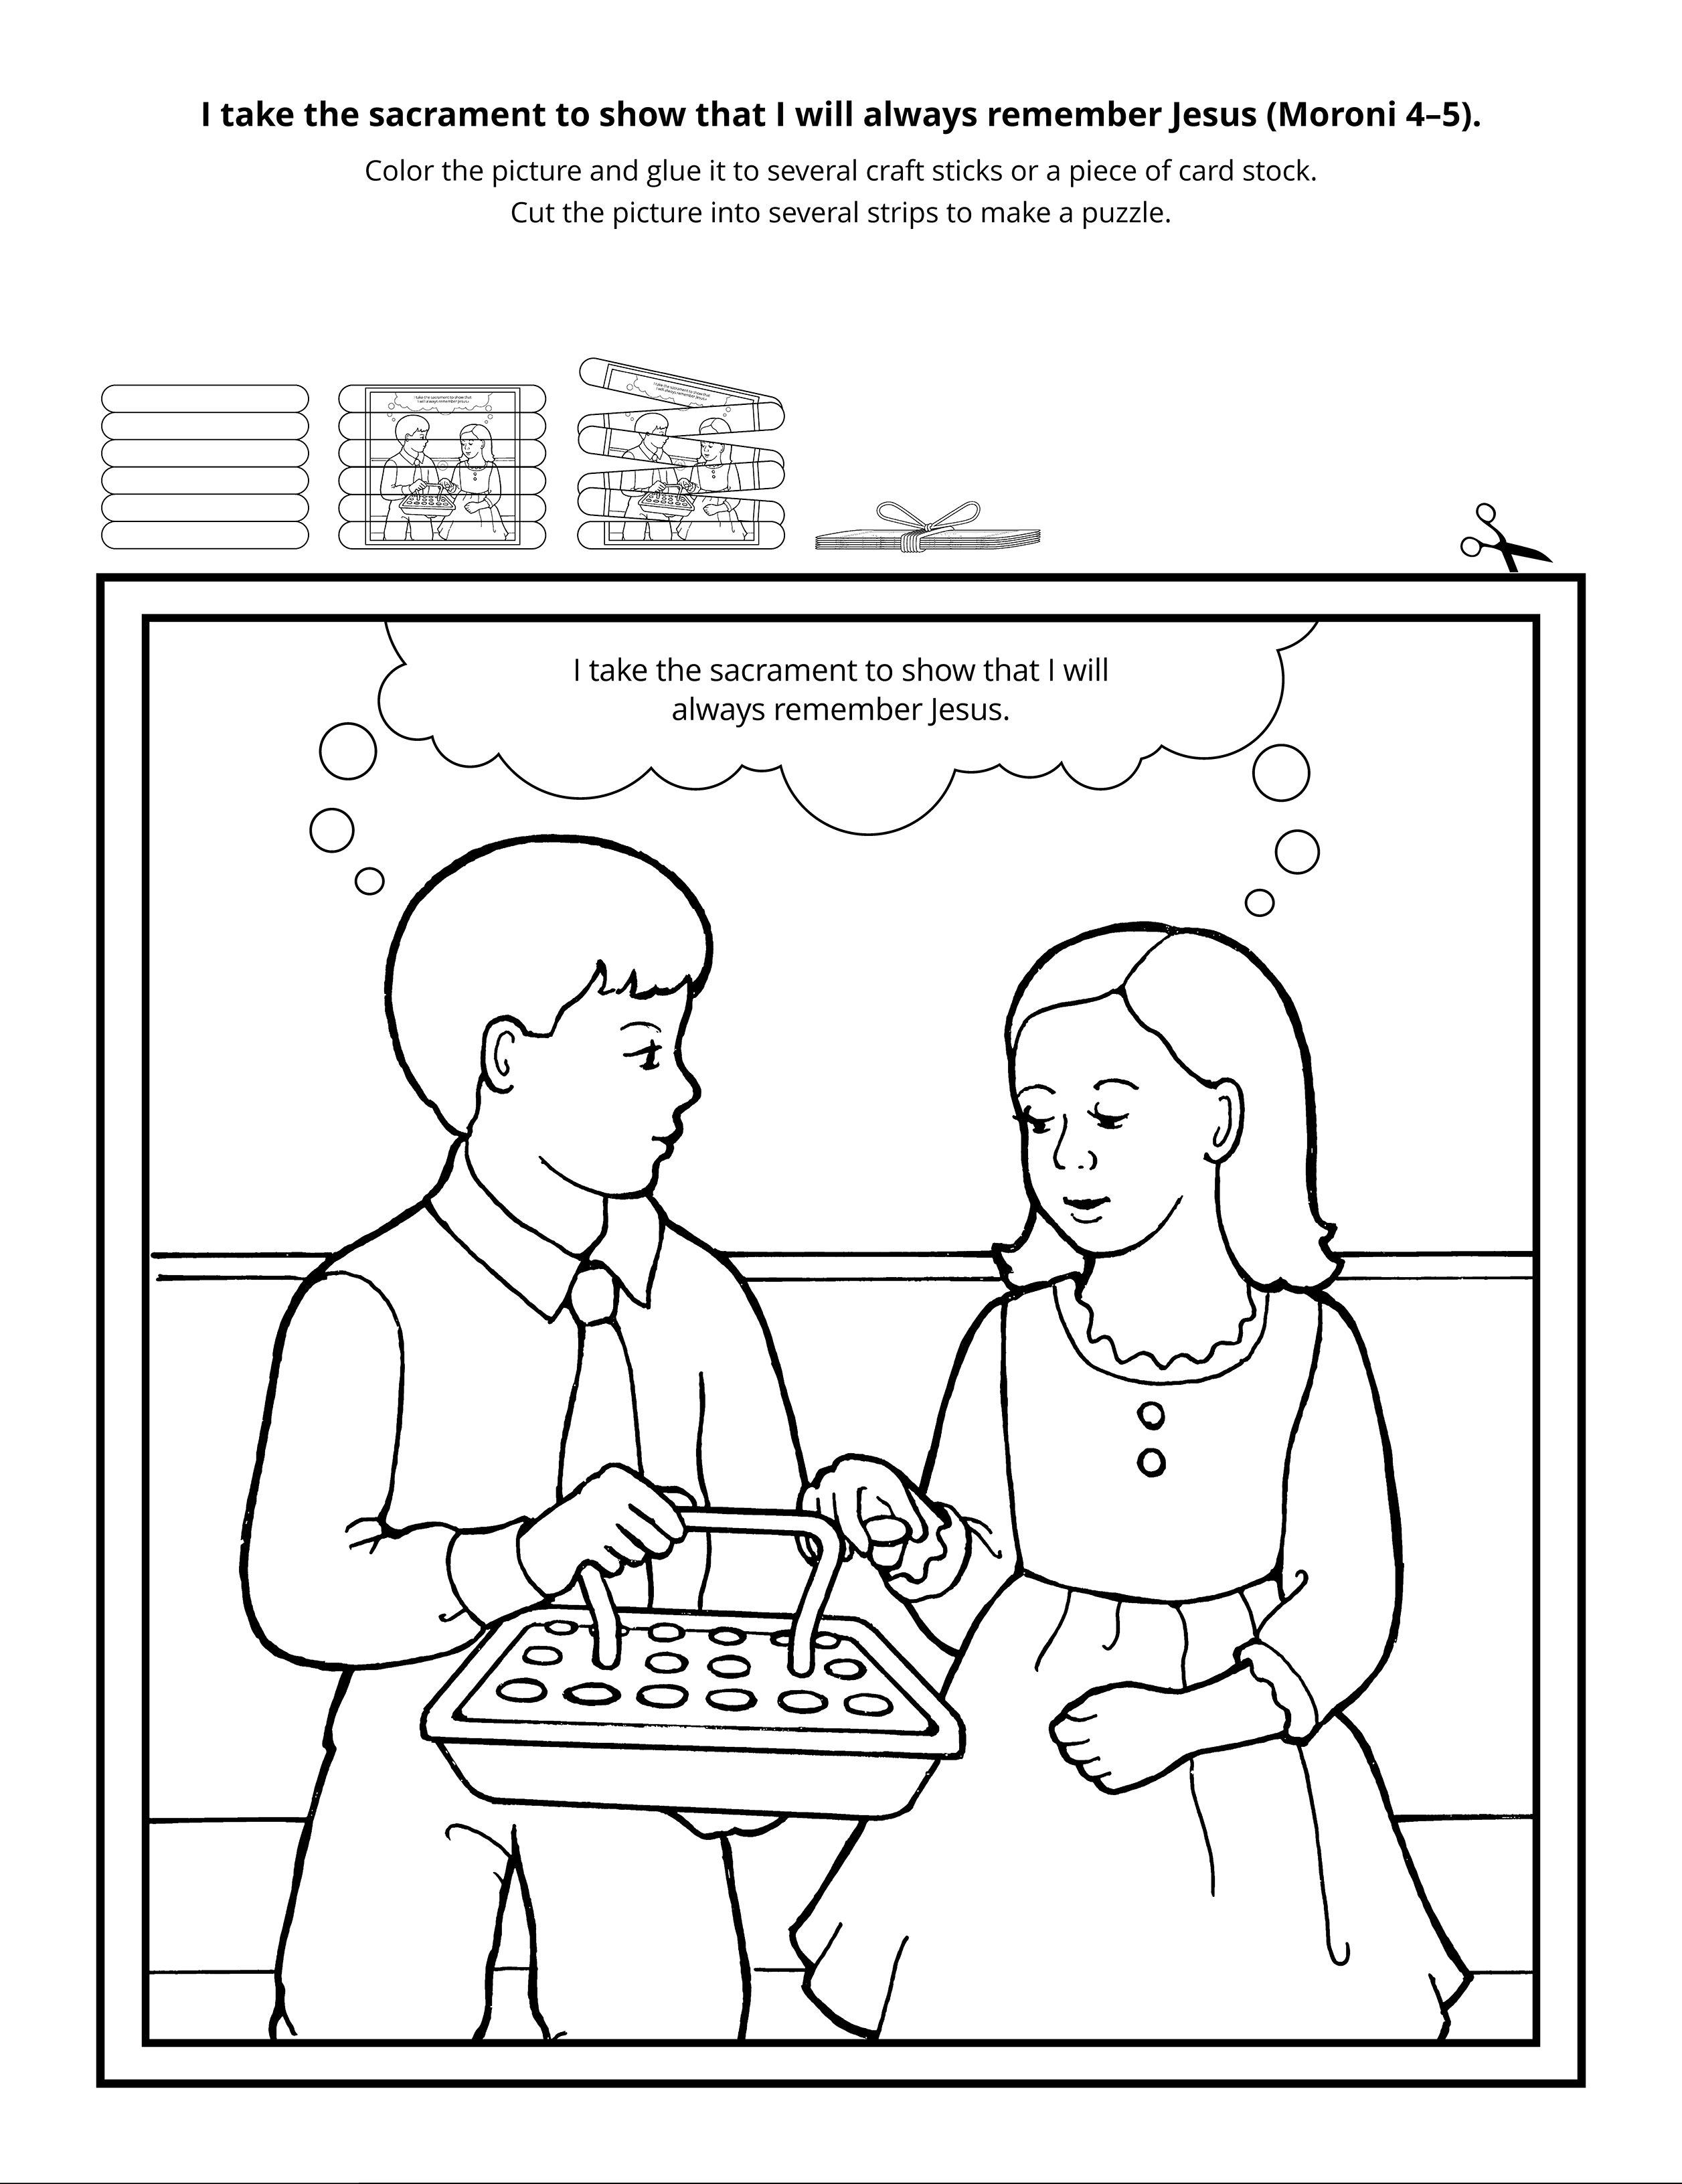 A line drawing of children taking the sacrament.